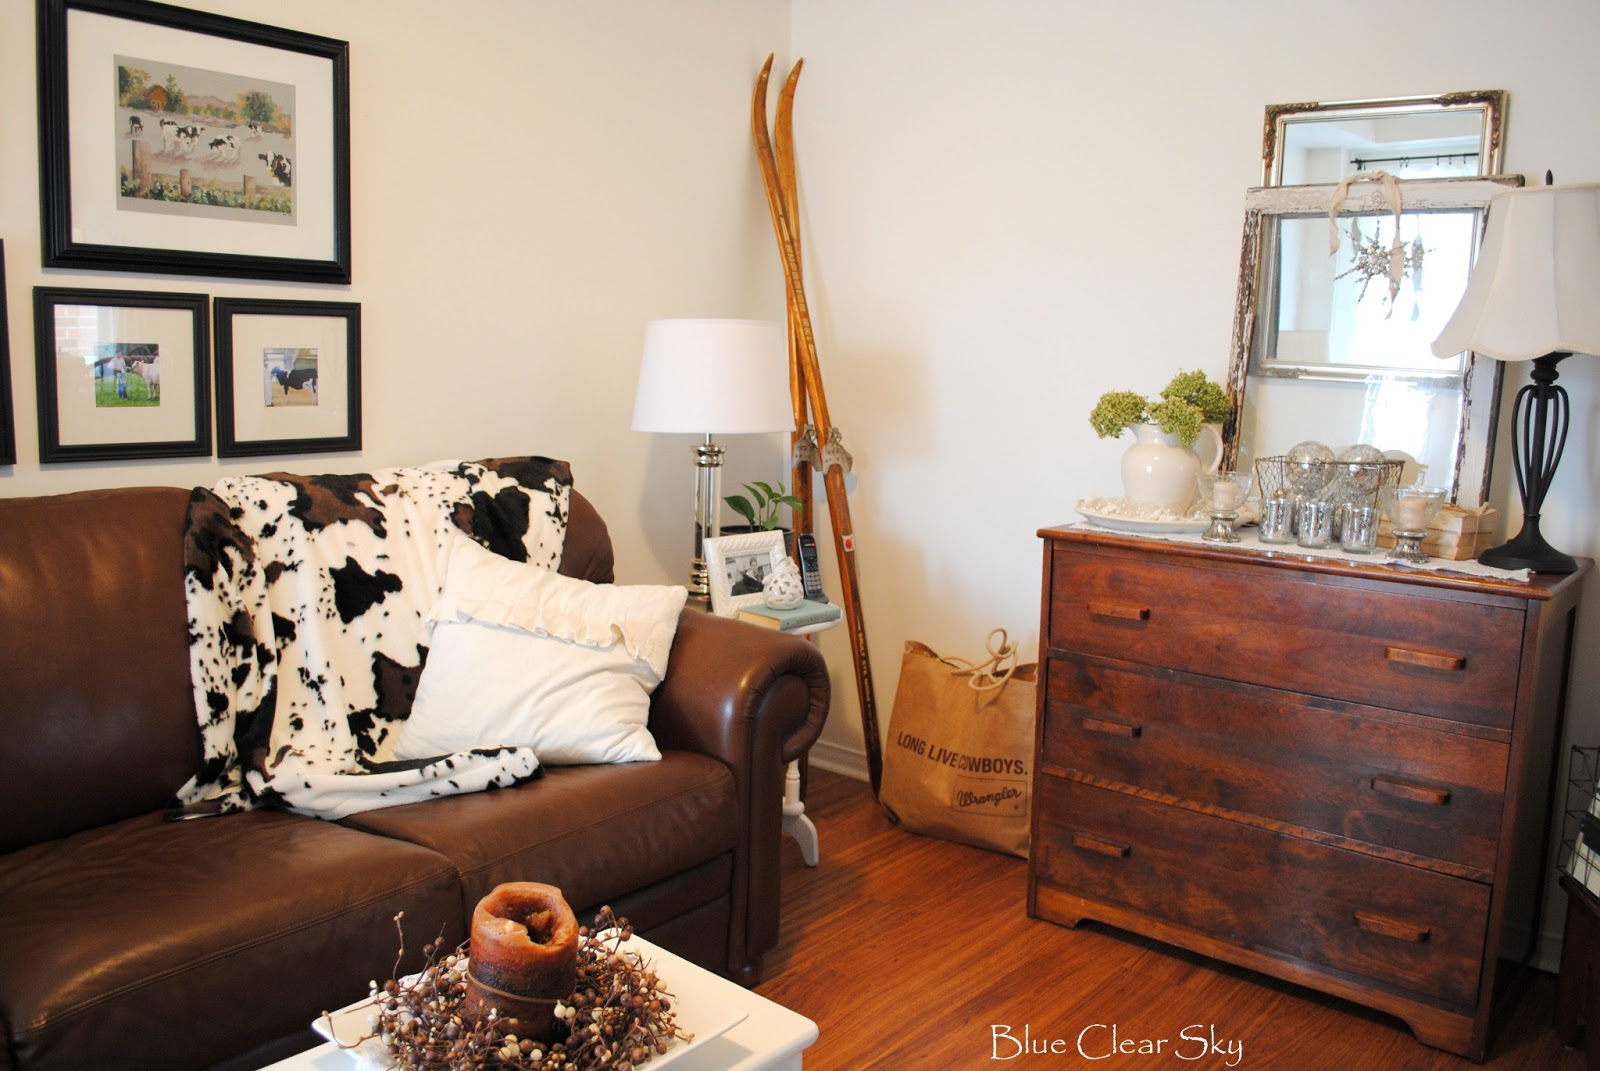 cowboy living room. The vintage skis also stayed  along with the burlap Wrangler LONG LIVE COWBOYS bag filled my knitting and crochet projects so they are close at hand Rustic Maple Our Living Room for Winter